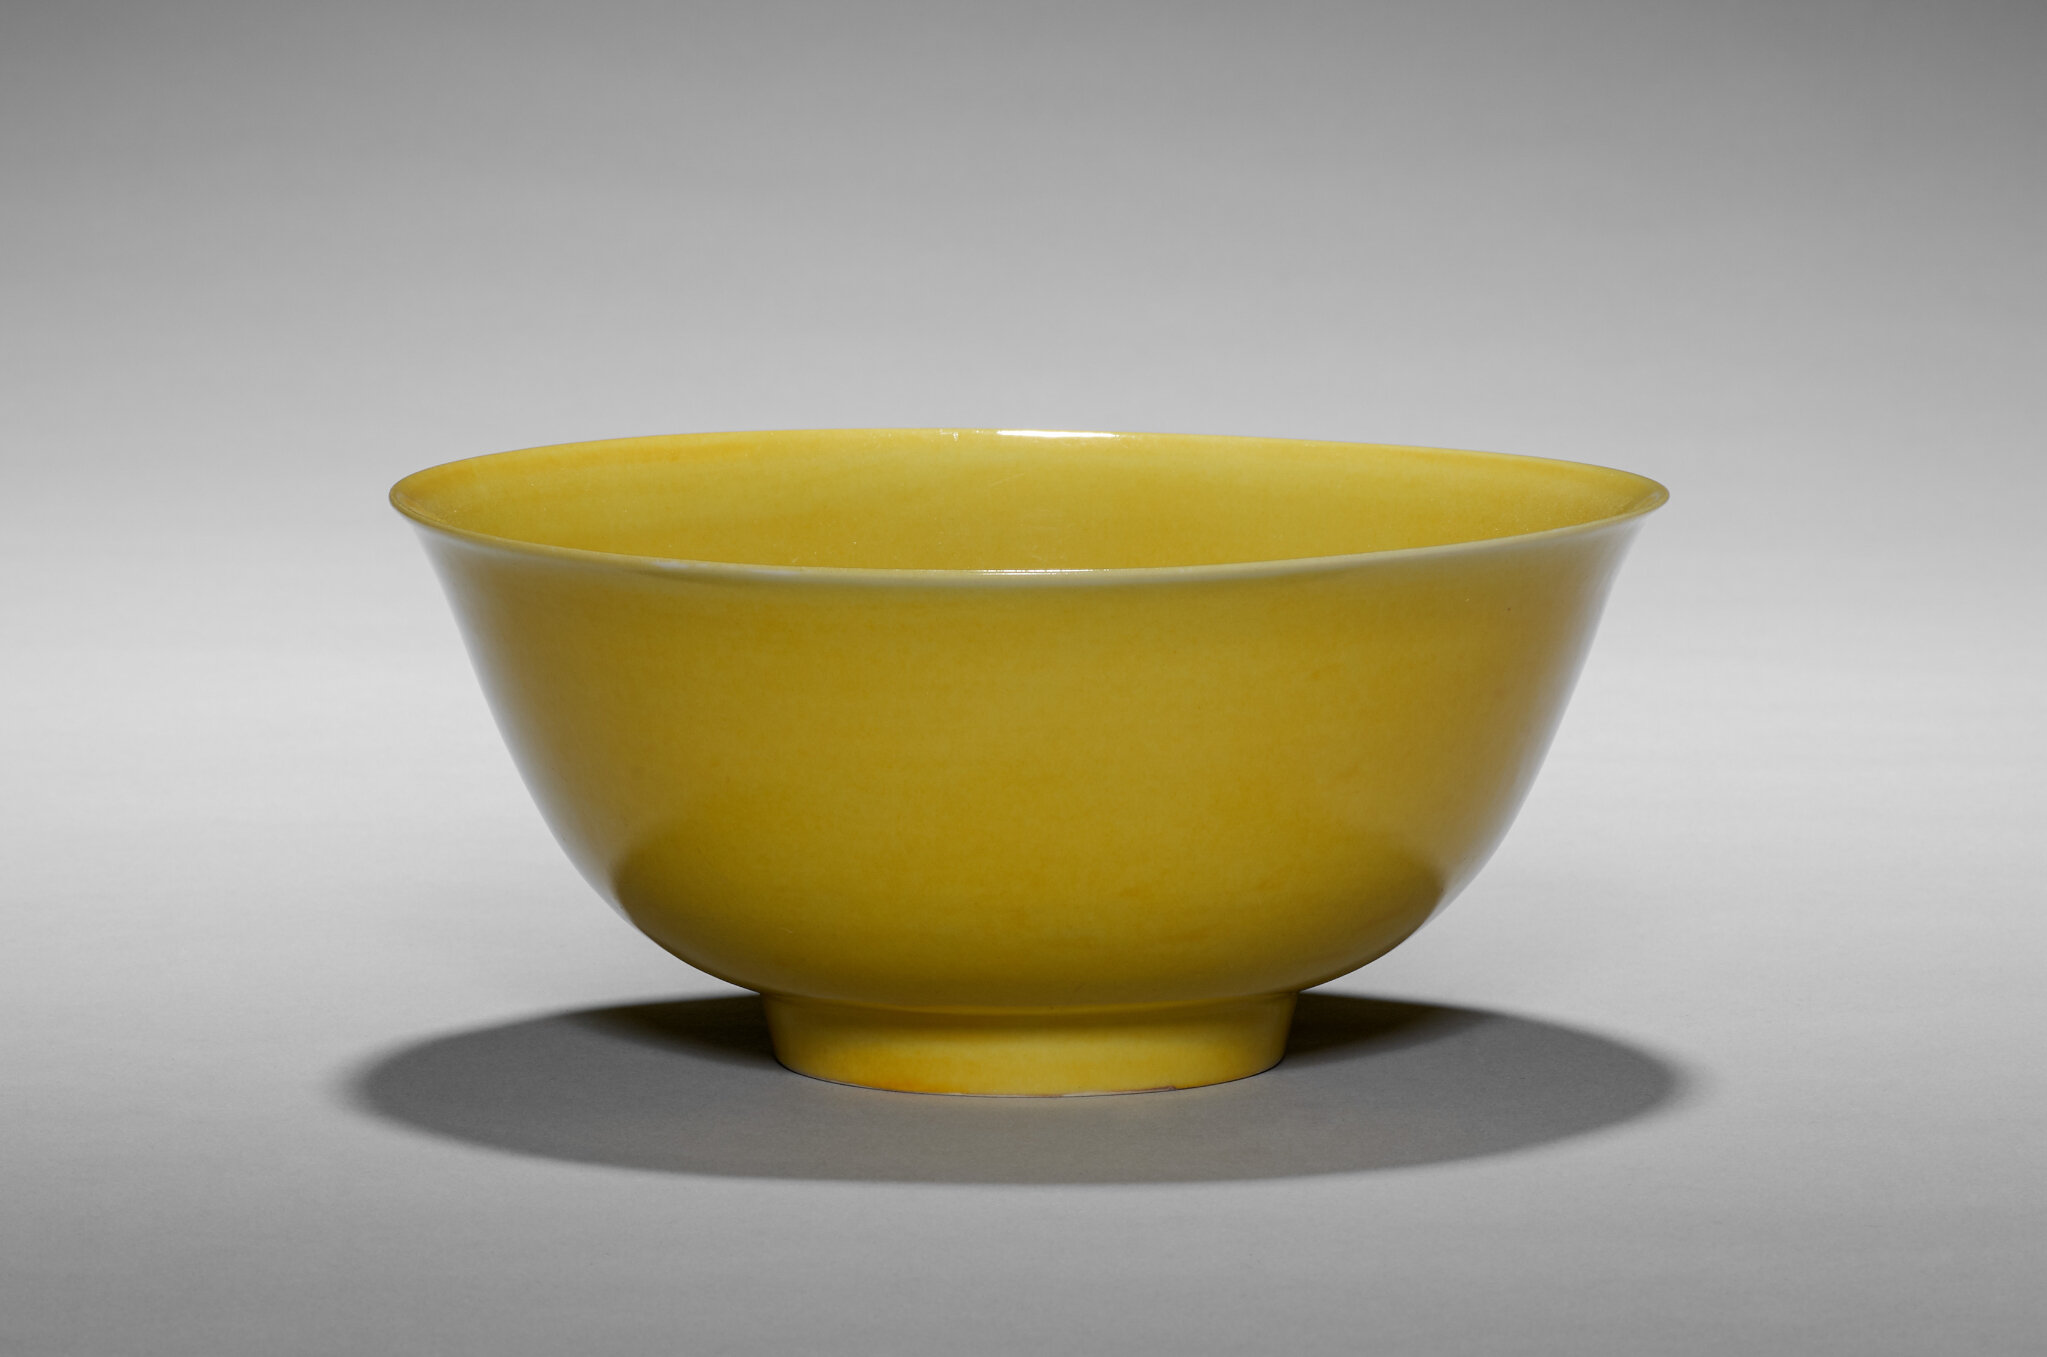 Yellow Glazed Bowl, China, Ming dynasty (1368-1644), Zhengde mark and reign (1505-21). Porcelain, 18.1 cm (7 1/8 in.), Nancy F. and Joseph P. Keithley Collection Gift 2020.180. ------WebKitFormBoundaryB6iifQHPJvHt8f3R Content-Disposition: form-data; na